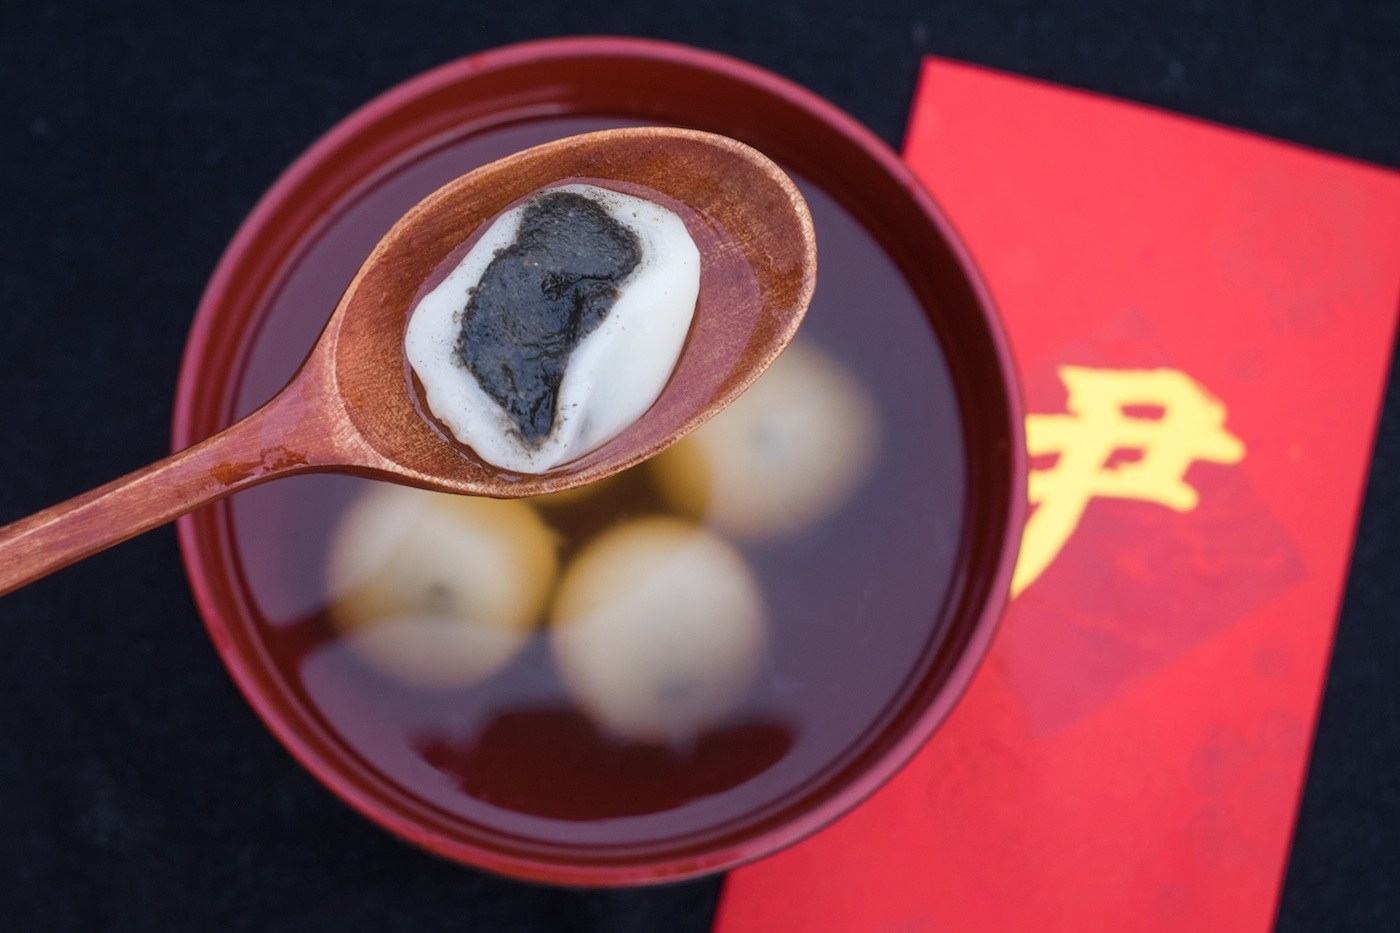 Macau dishes tang yuan